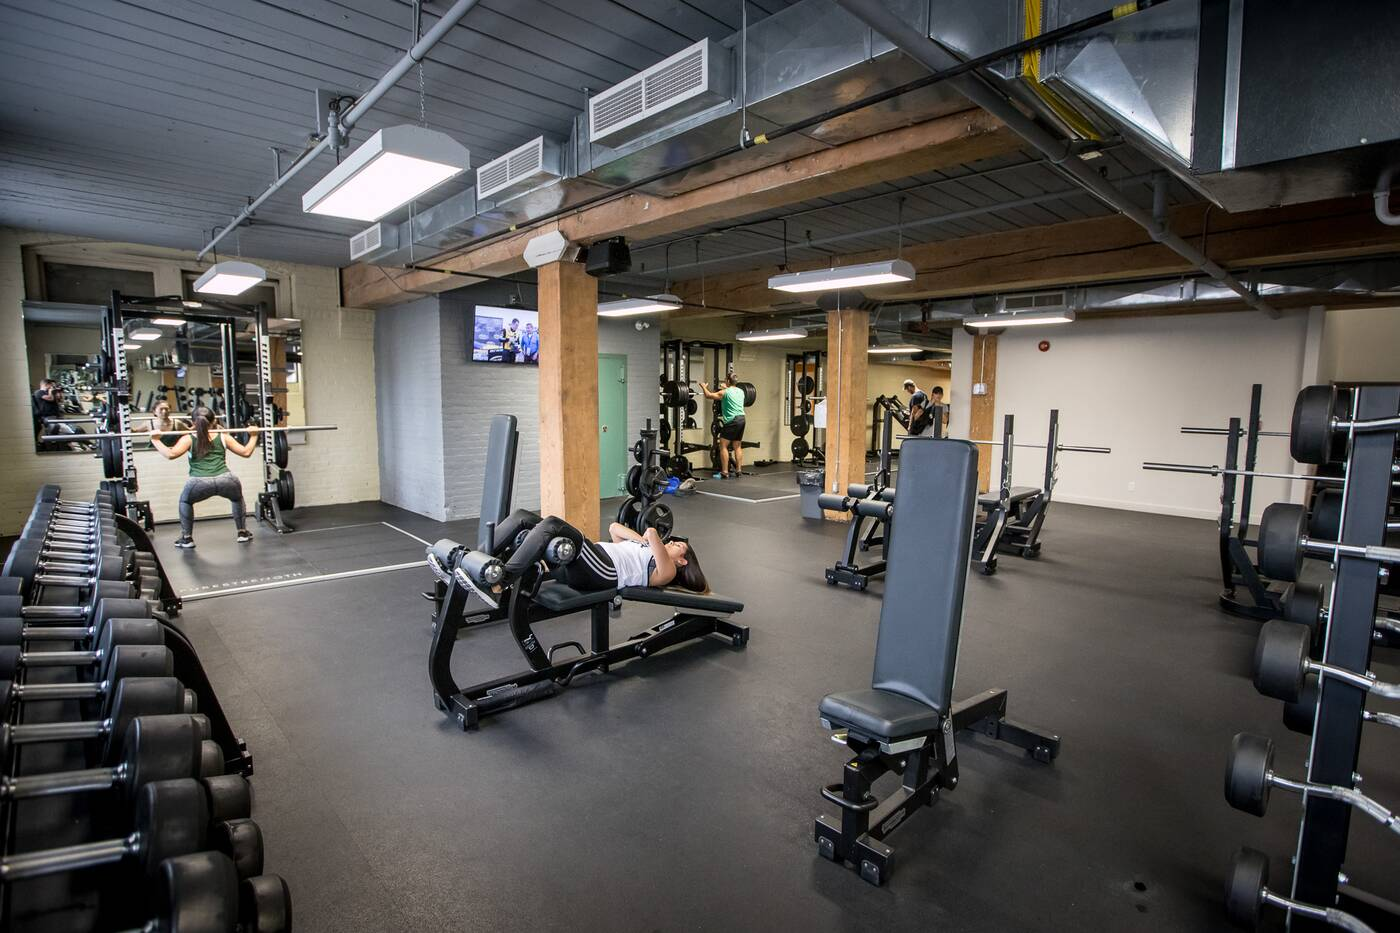 Hone fitness carlaw blogto toronto - Best cardio equipment for small spaces property ...